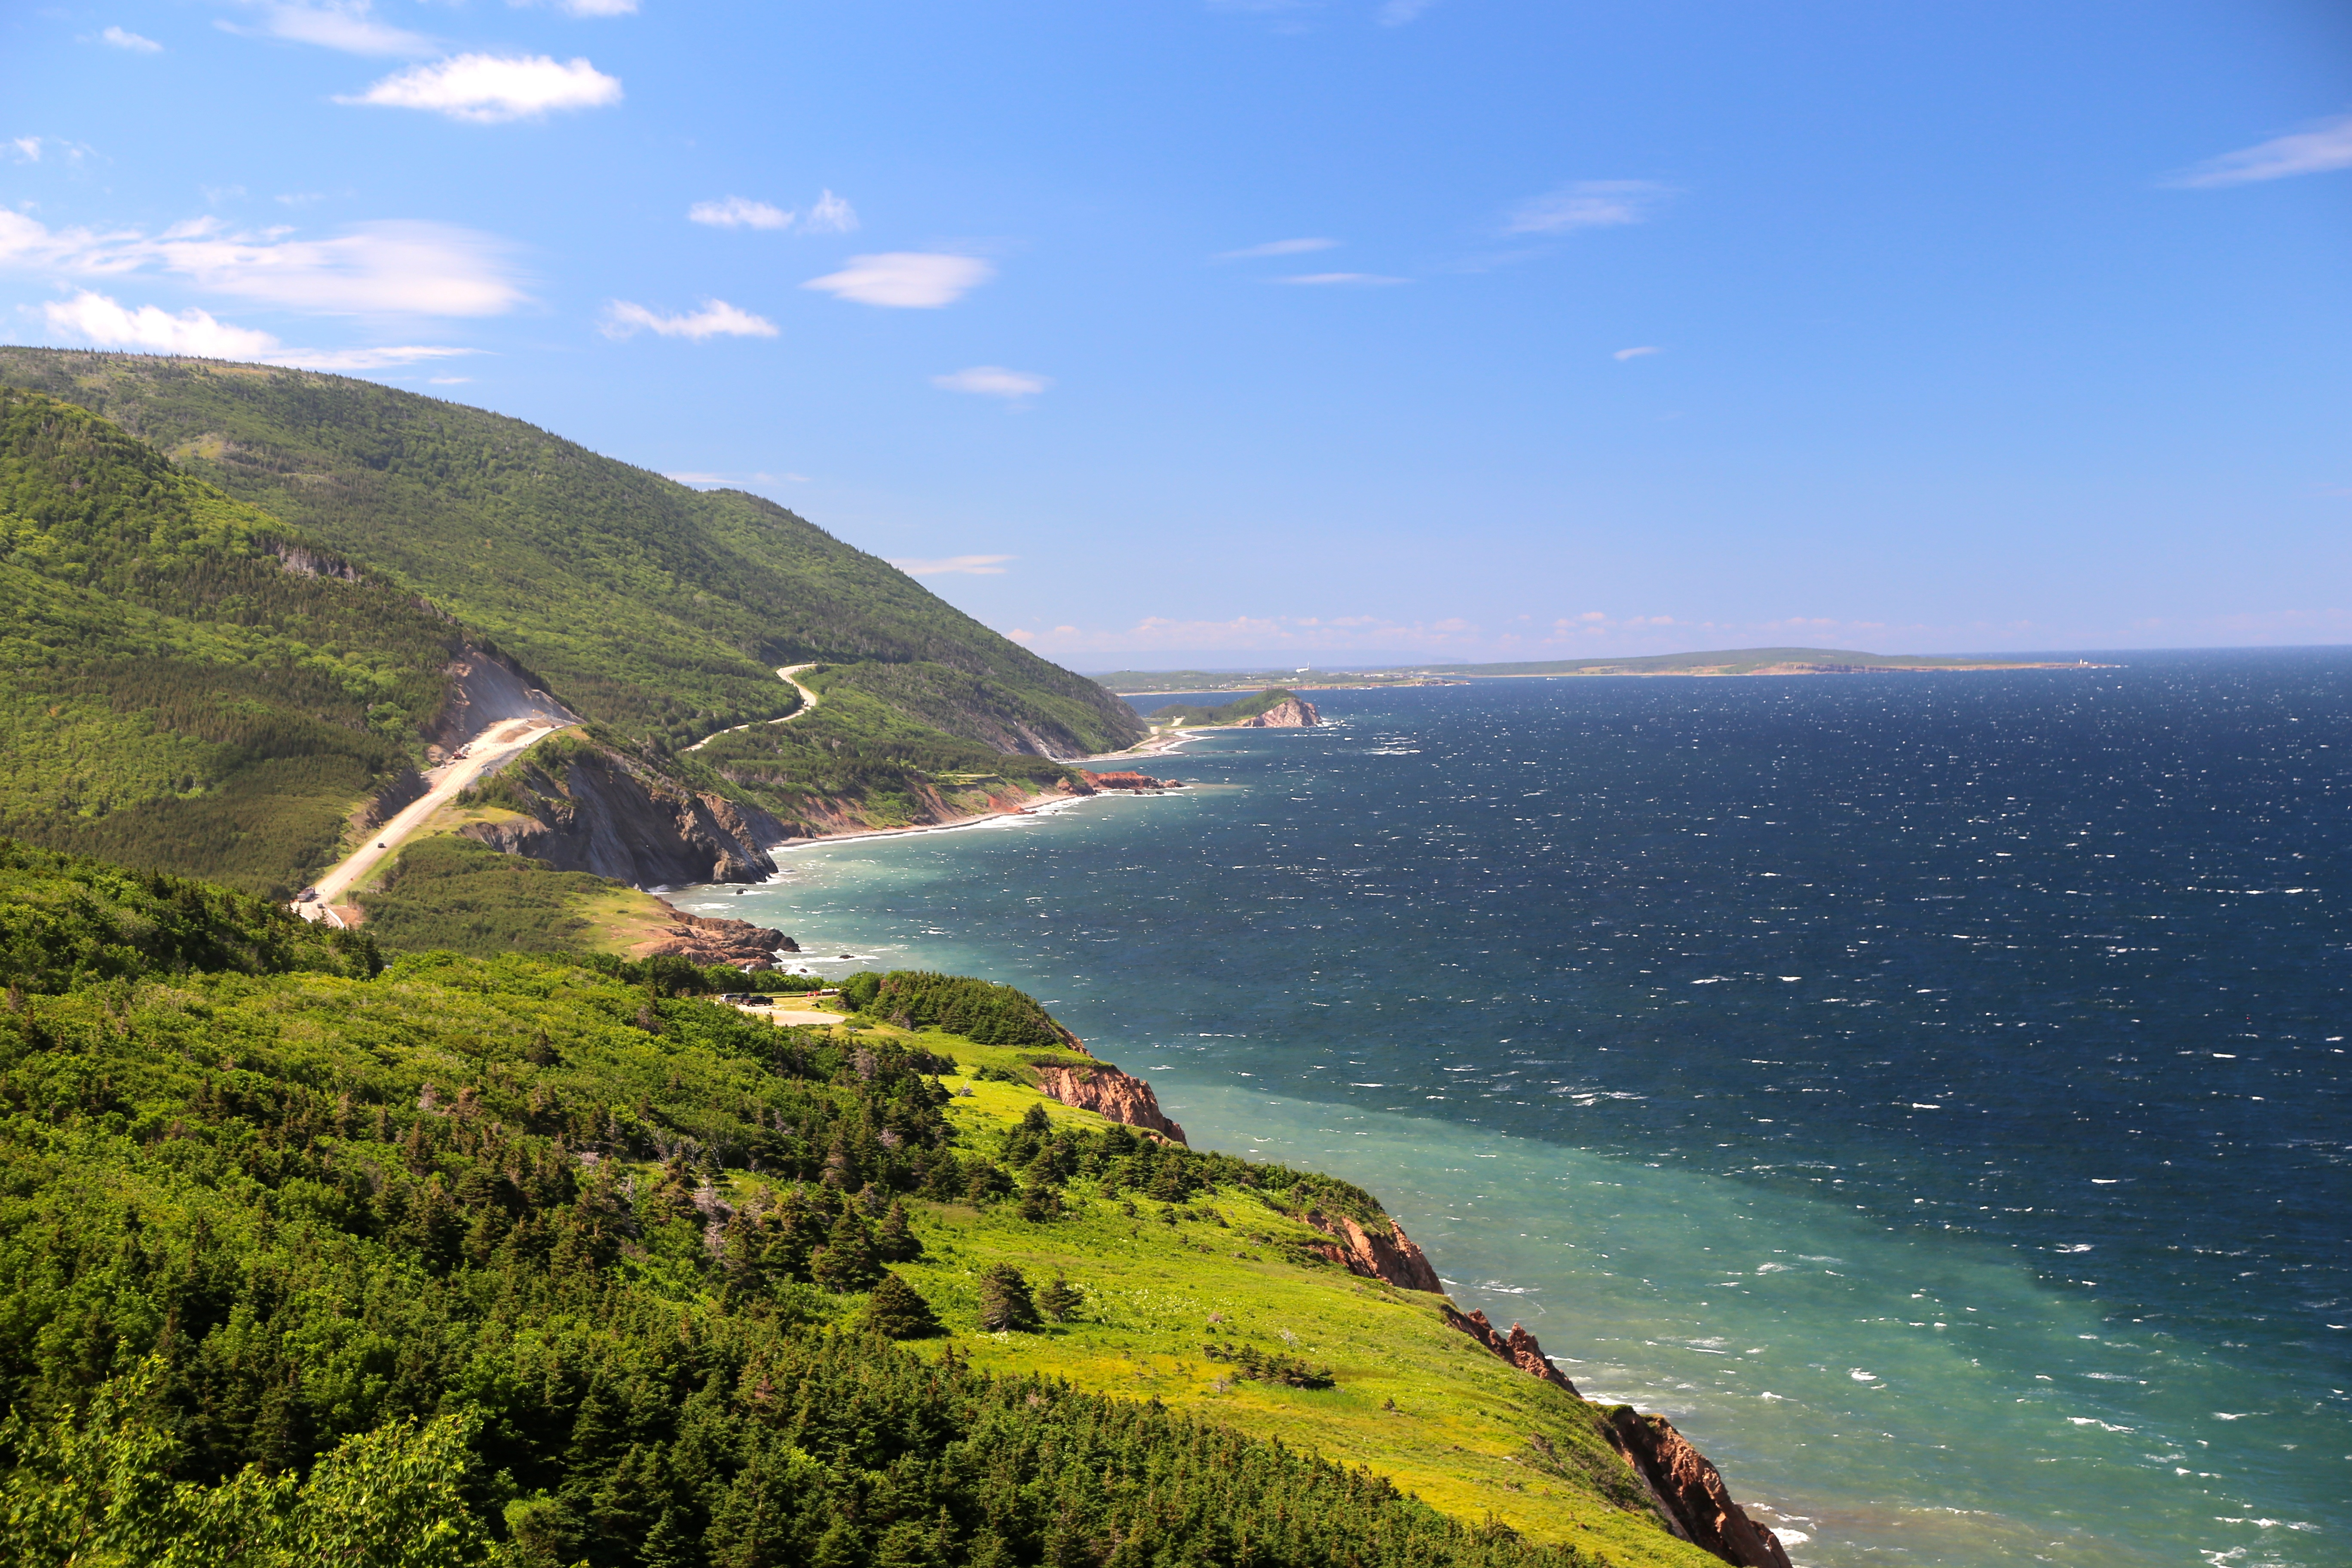 Nova Scotia Cabot Trail bicycle tour